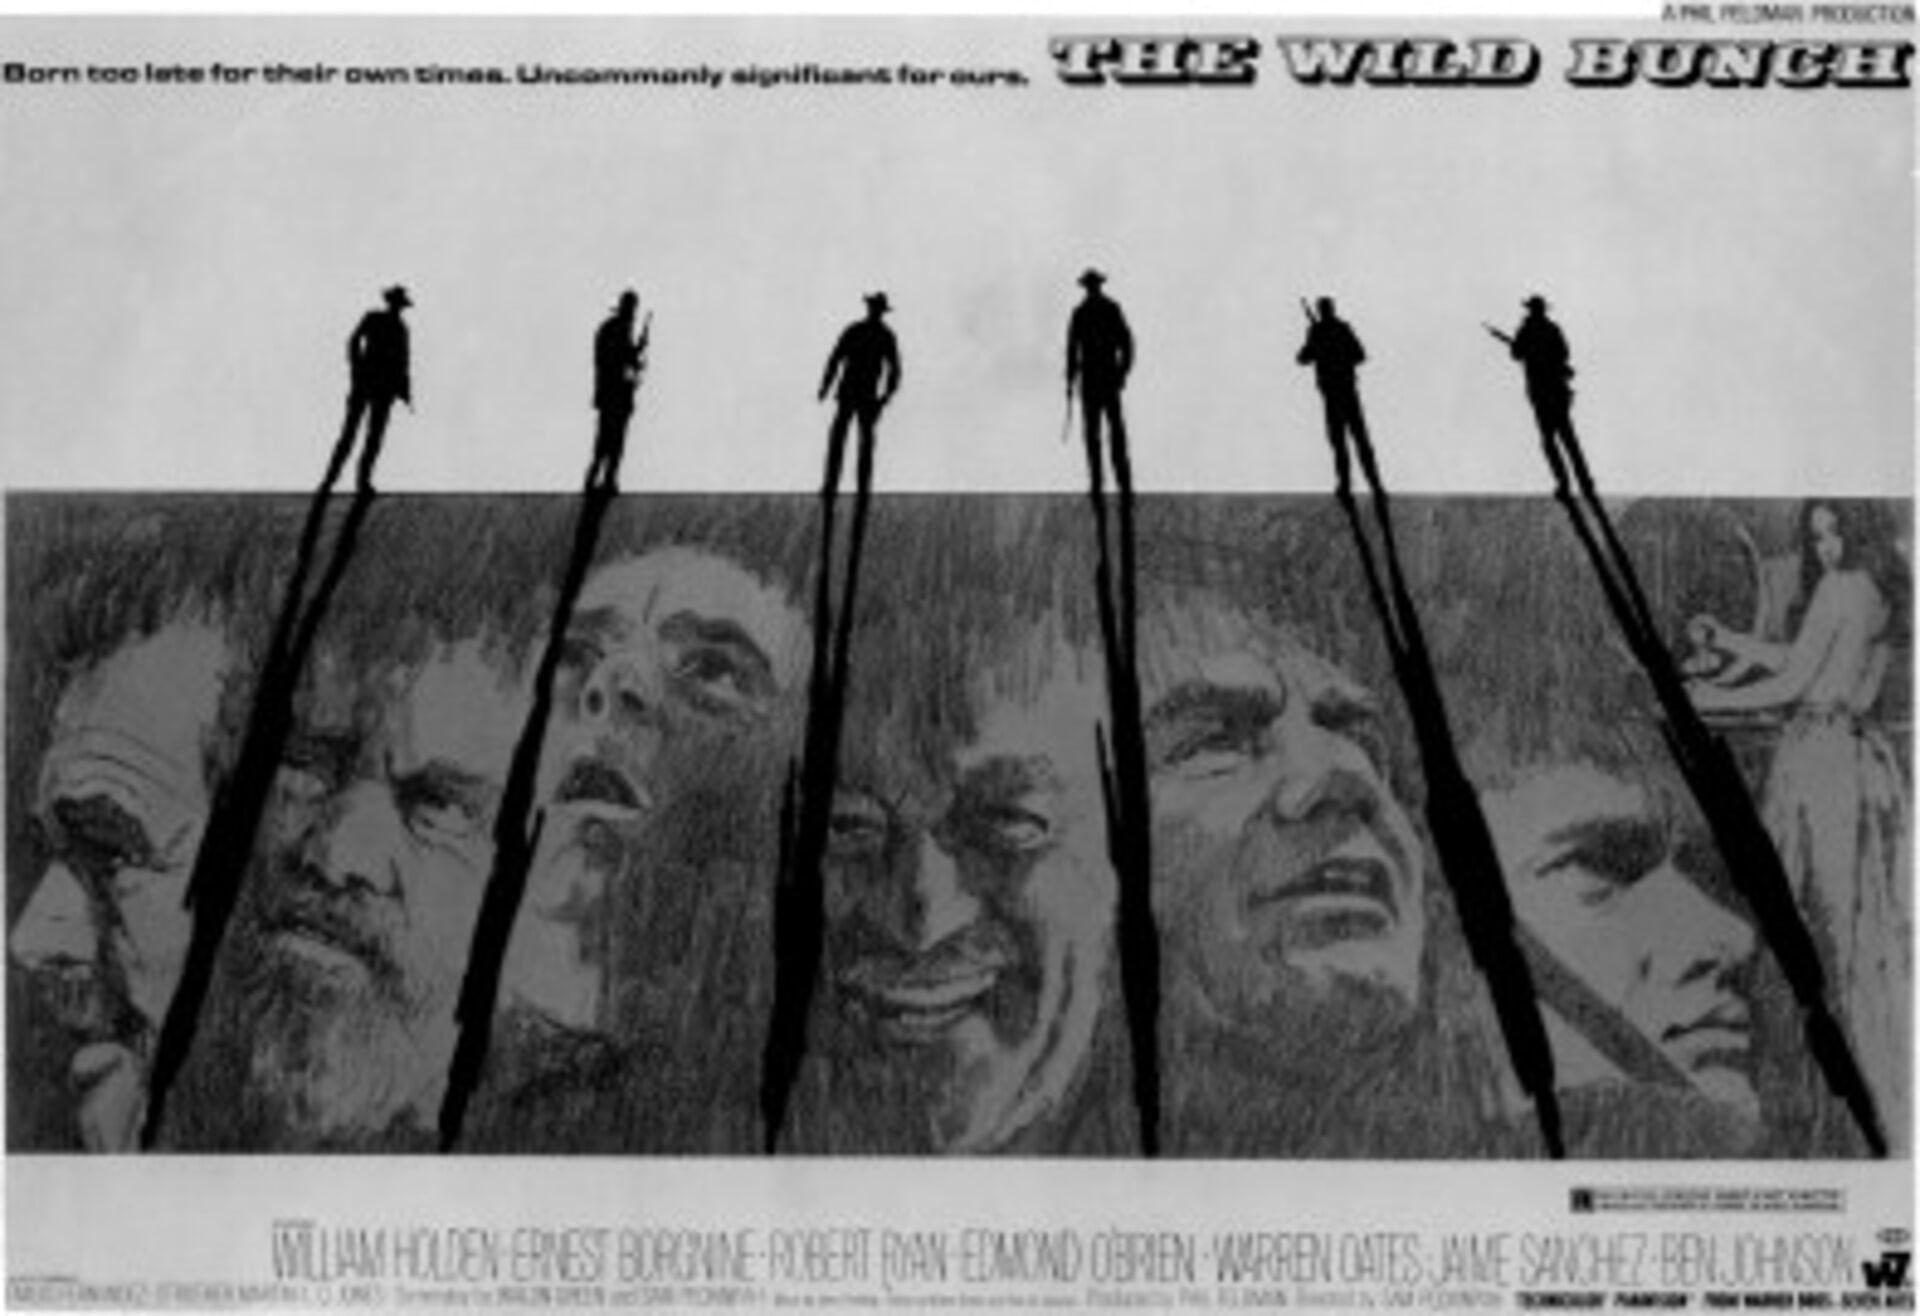 The Wild Bunch - Image 1